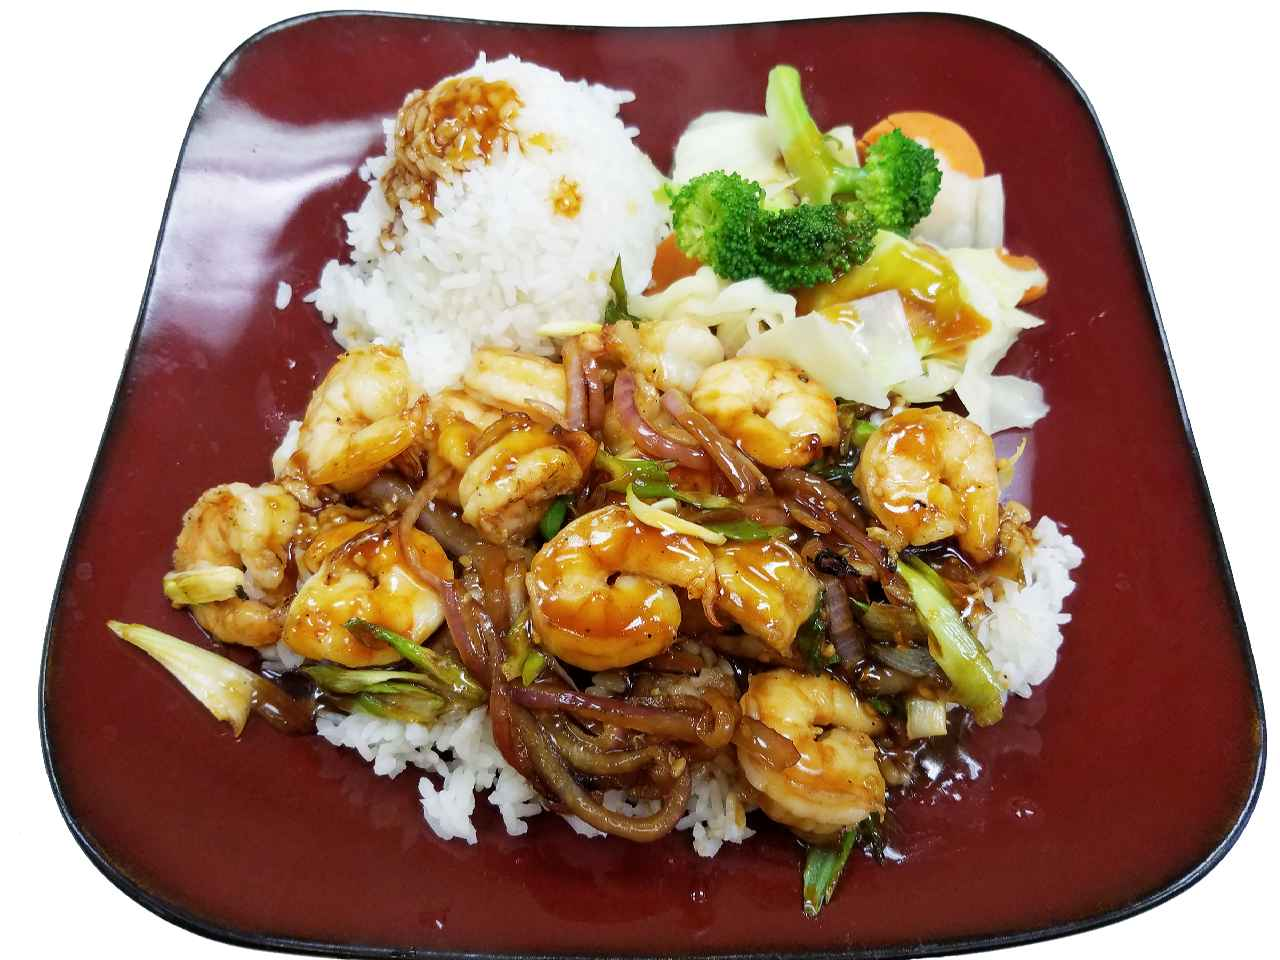 13. Teriyaki Shrimp